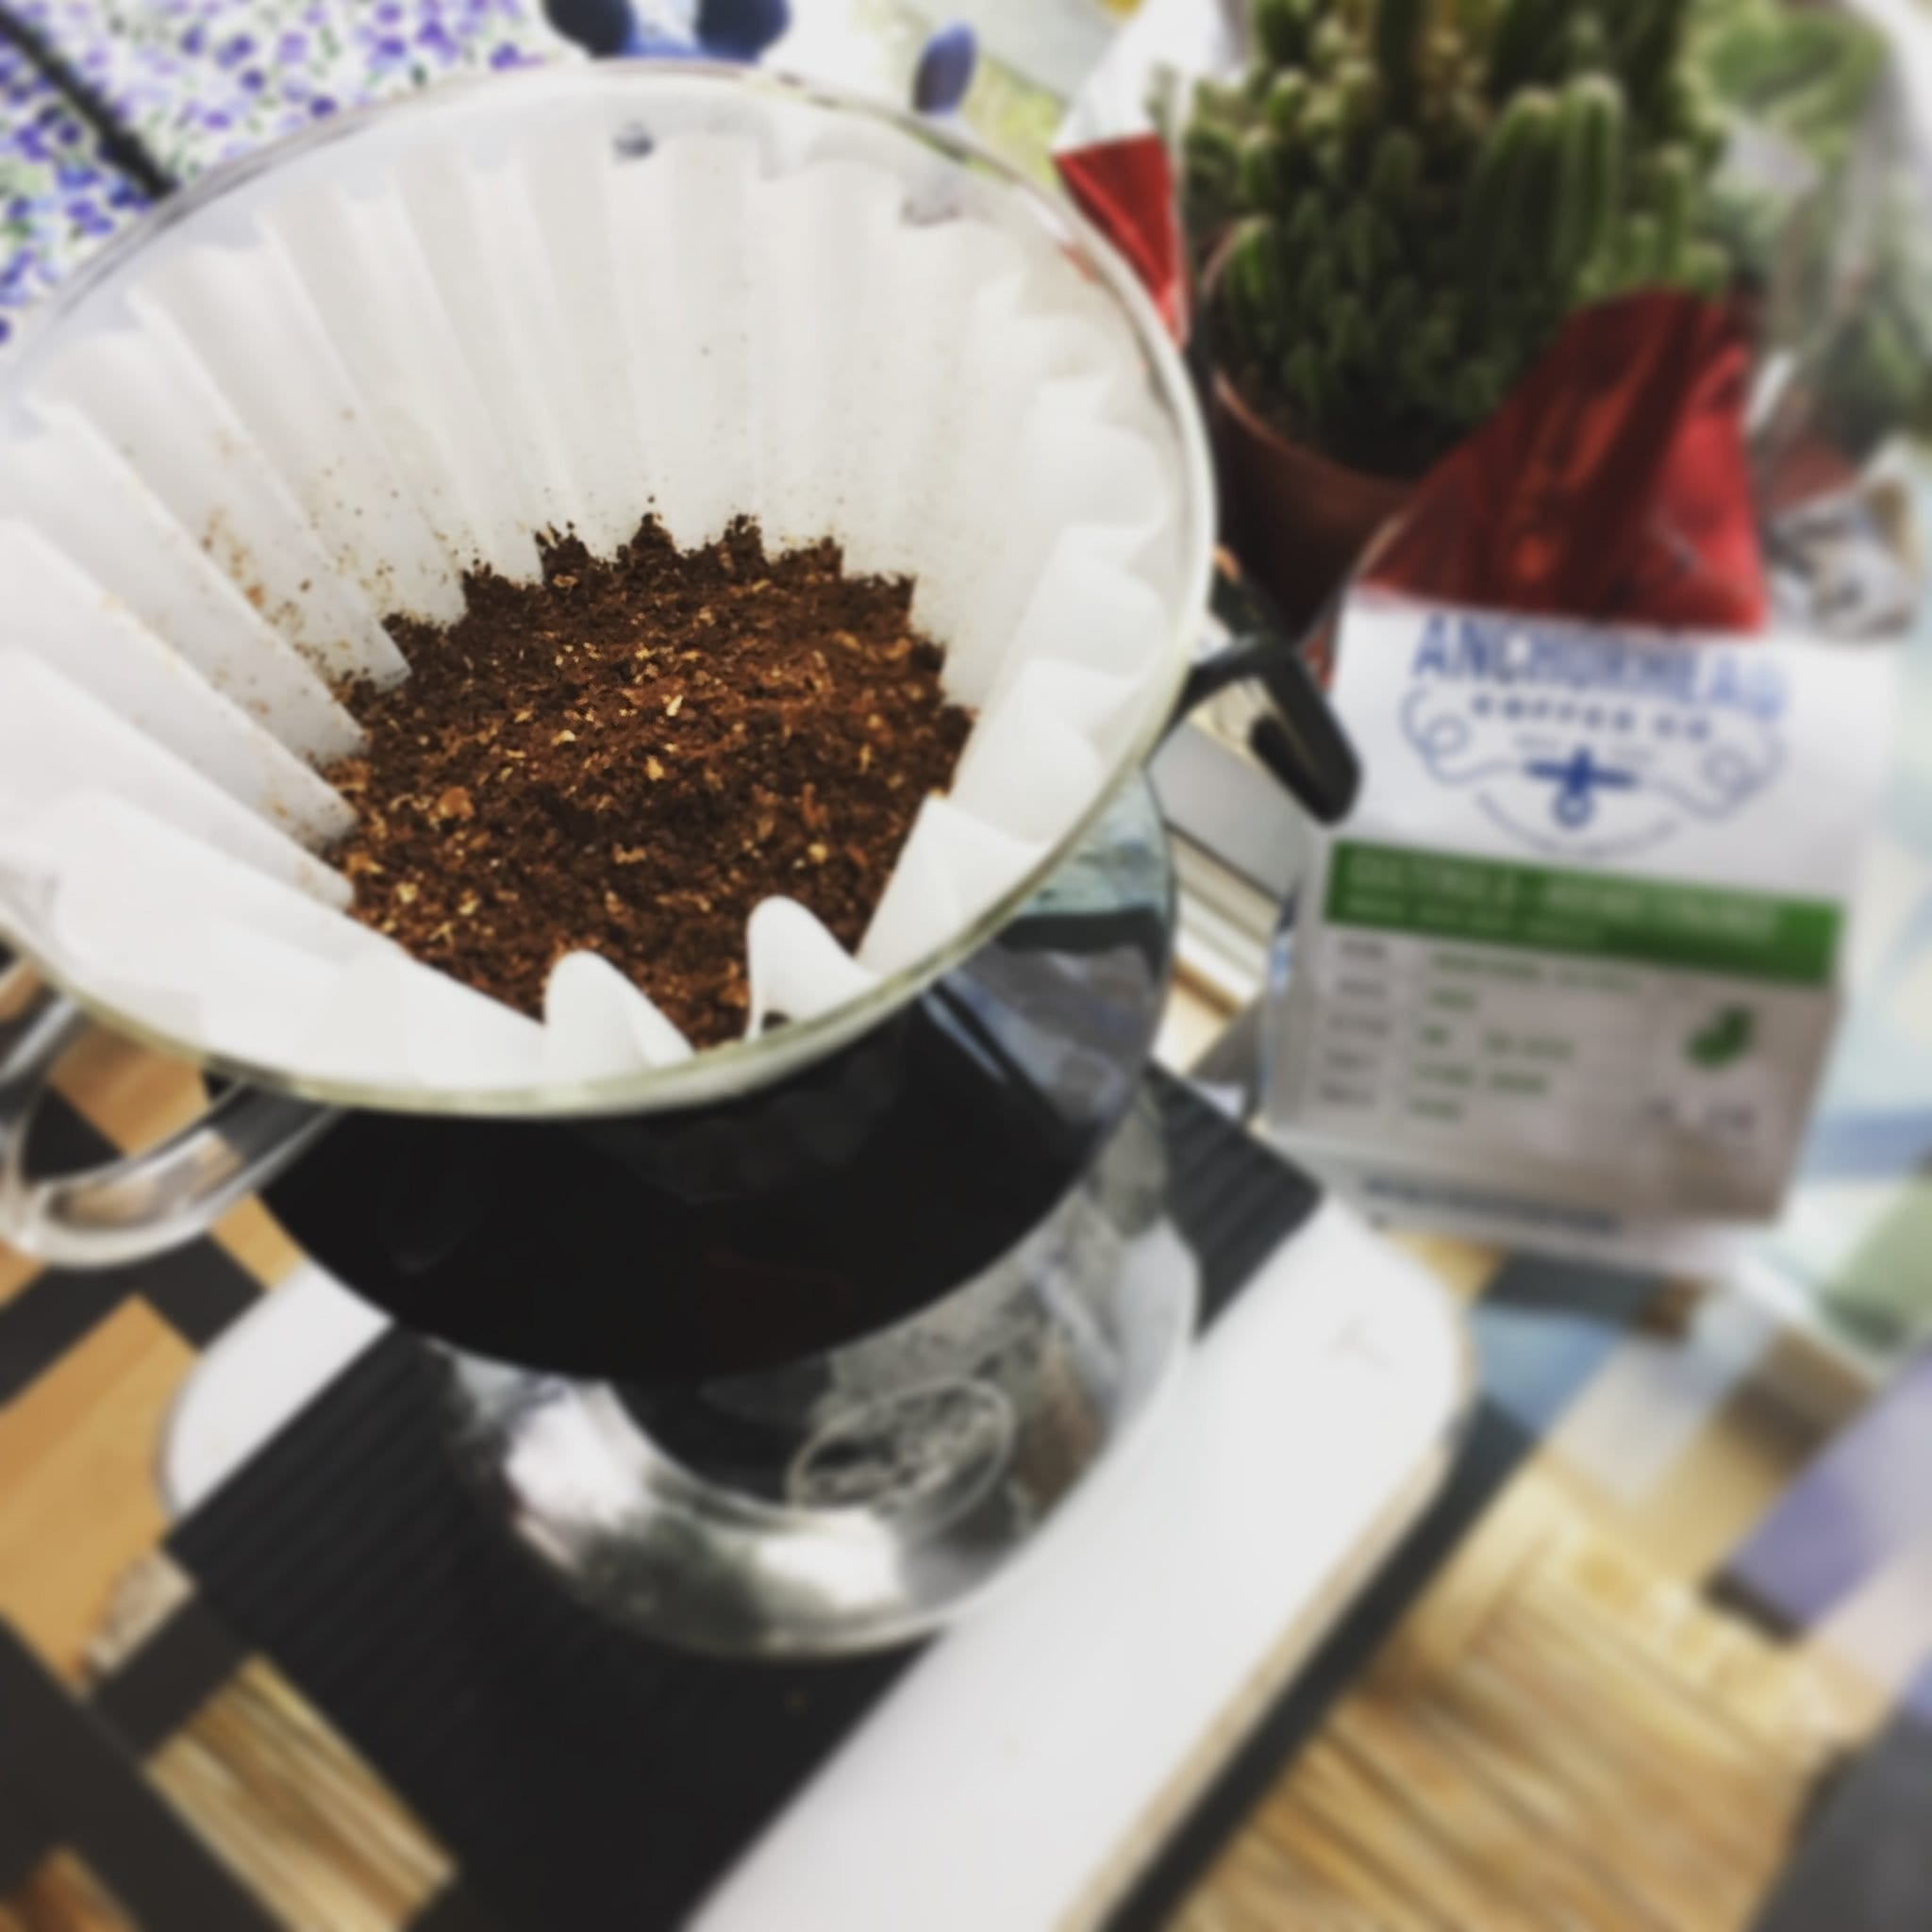 Kalita Wave Brewing on an Acaia Scale